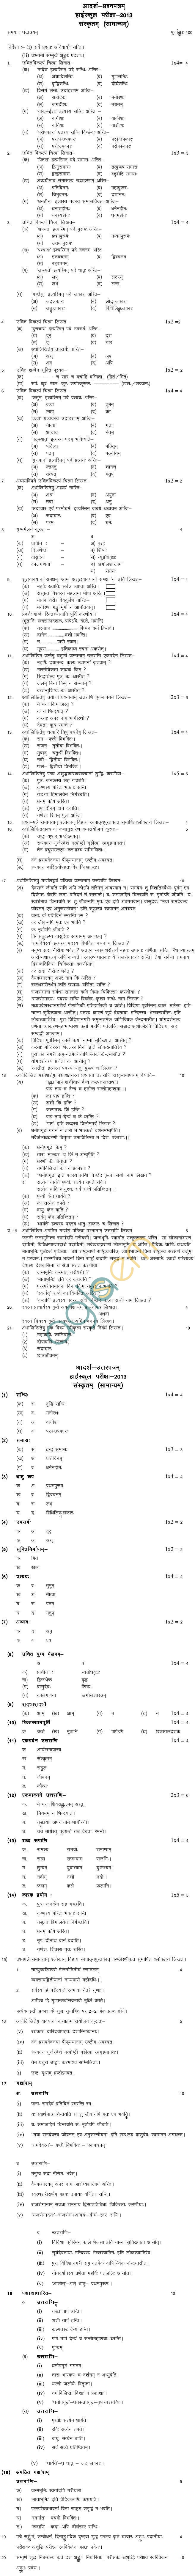 MP Board Class X Sanskrit General Model Questions & Answers - Set 1